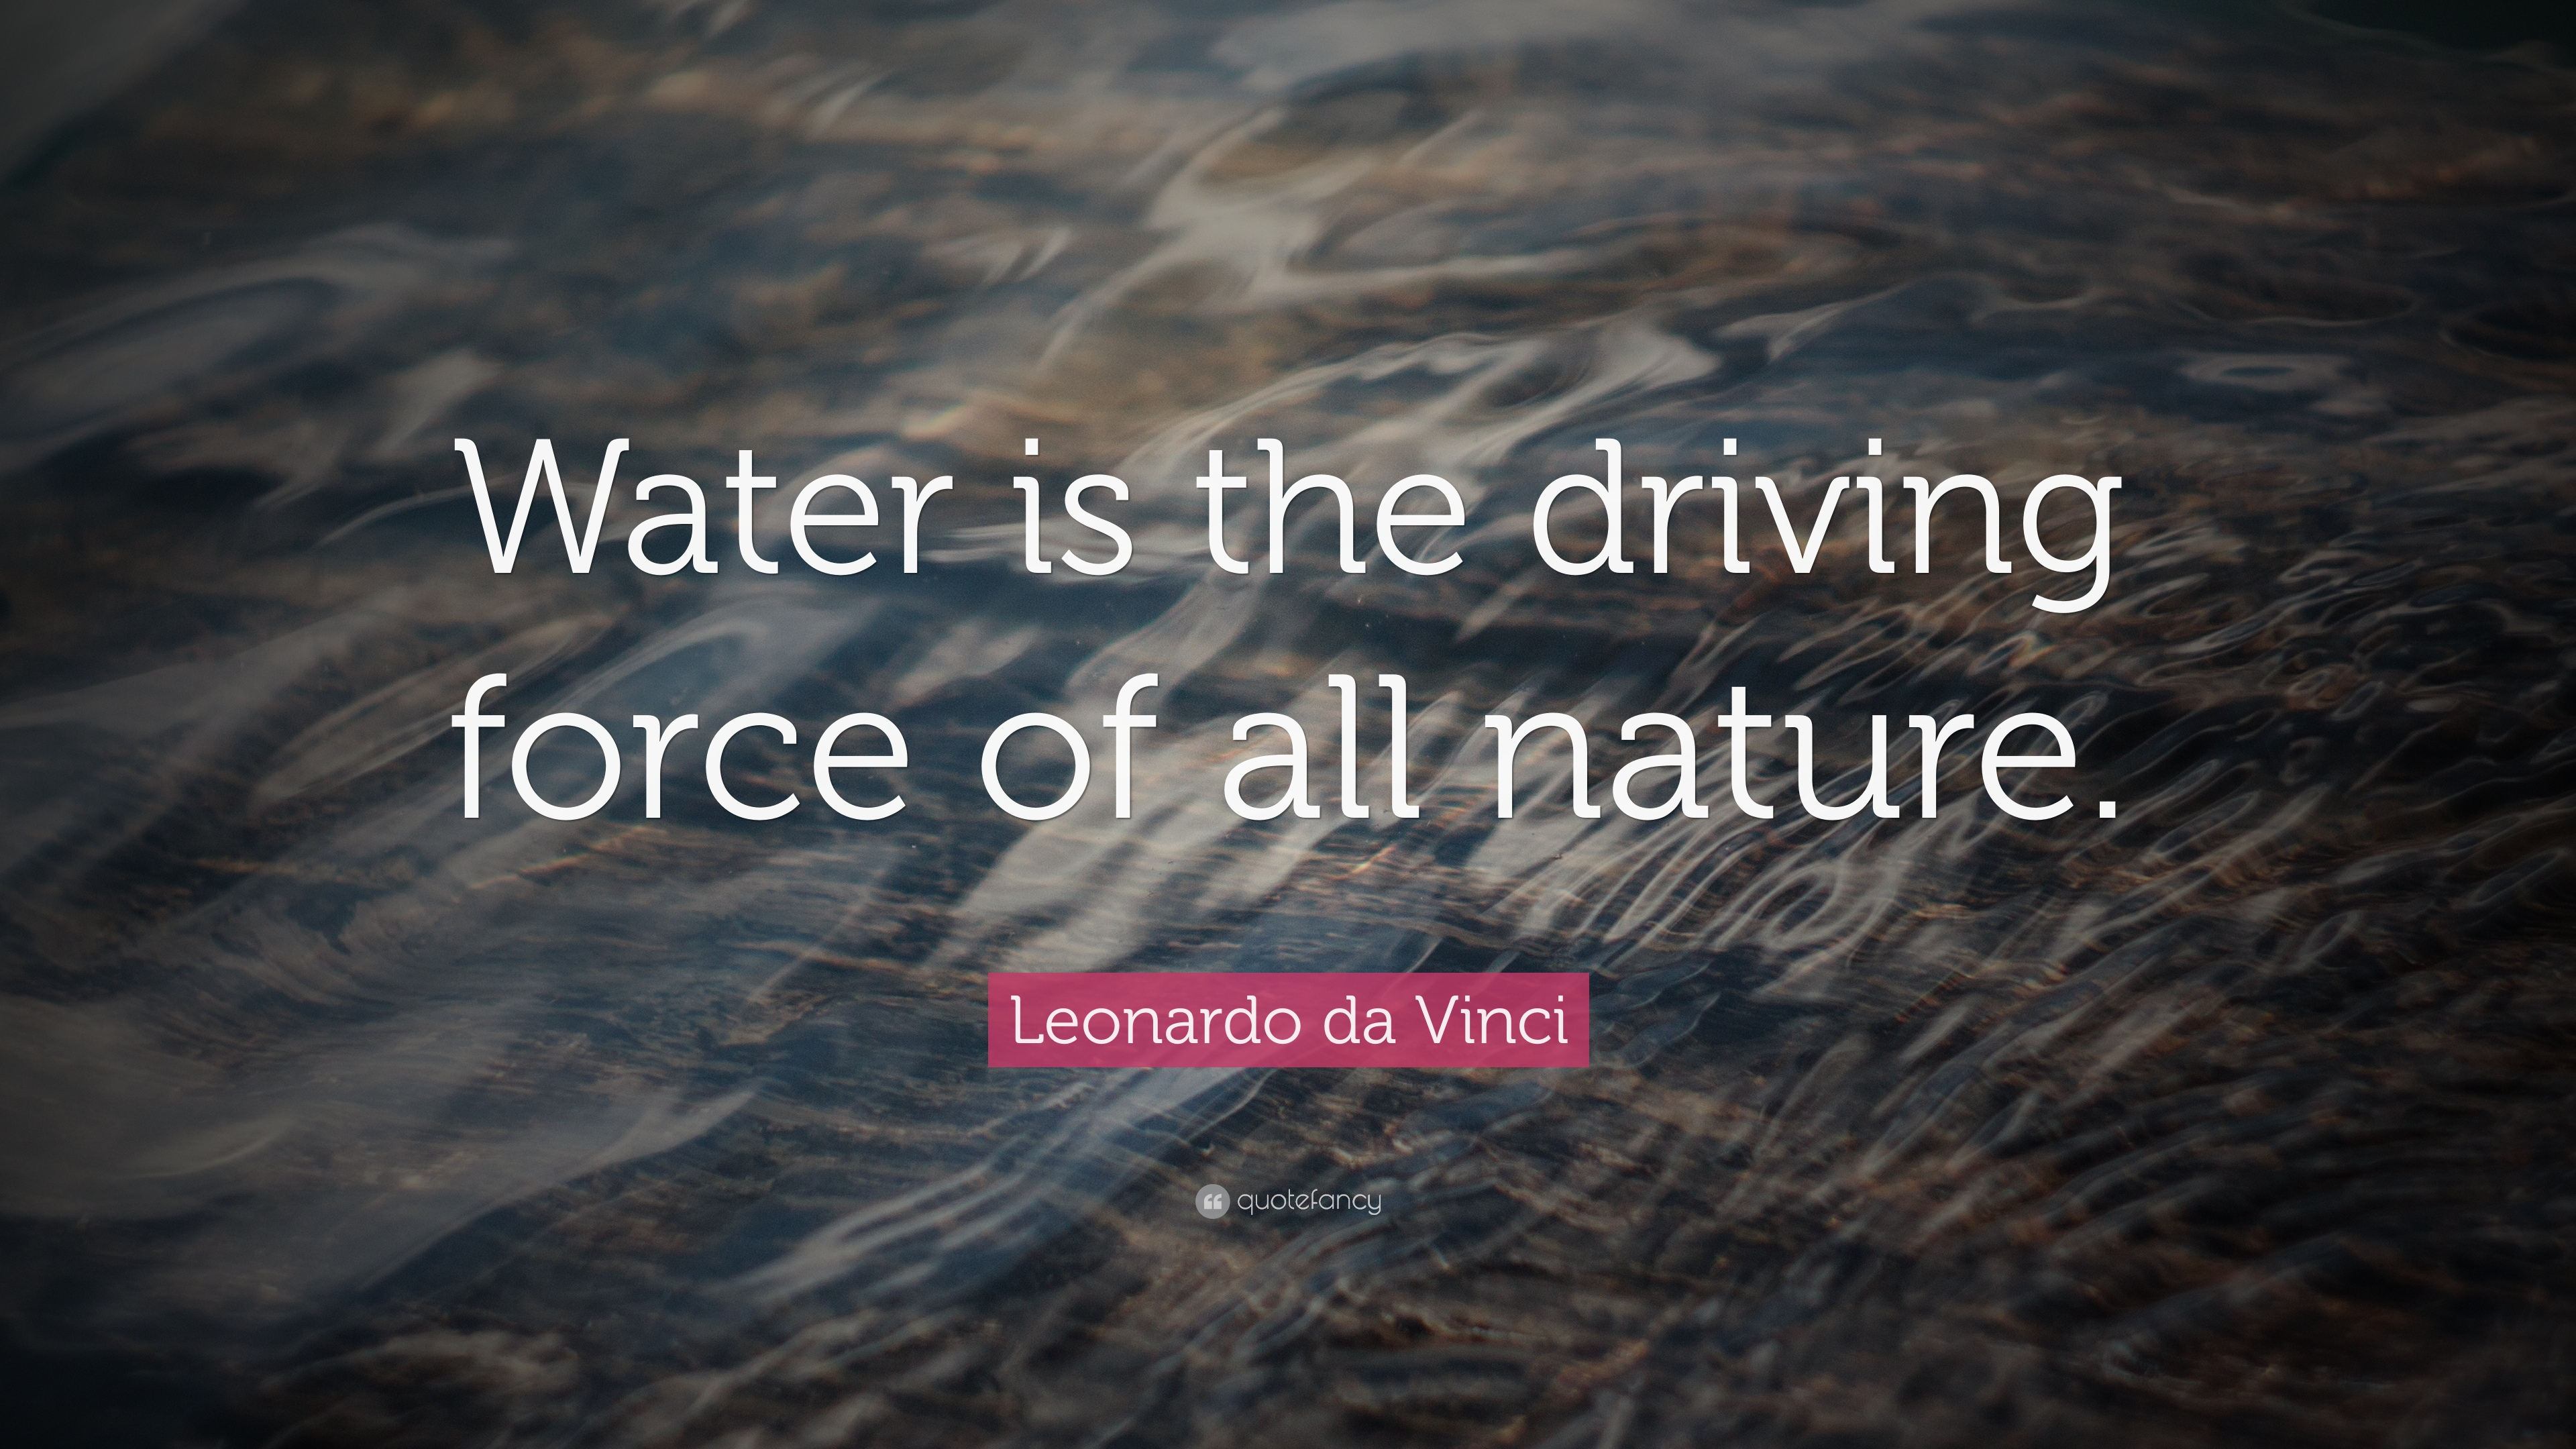 """leonardo da vinci quote """"water is the driving force of all nature"""